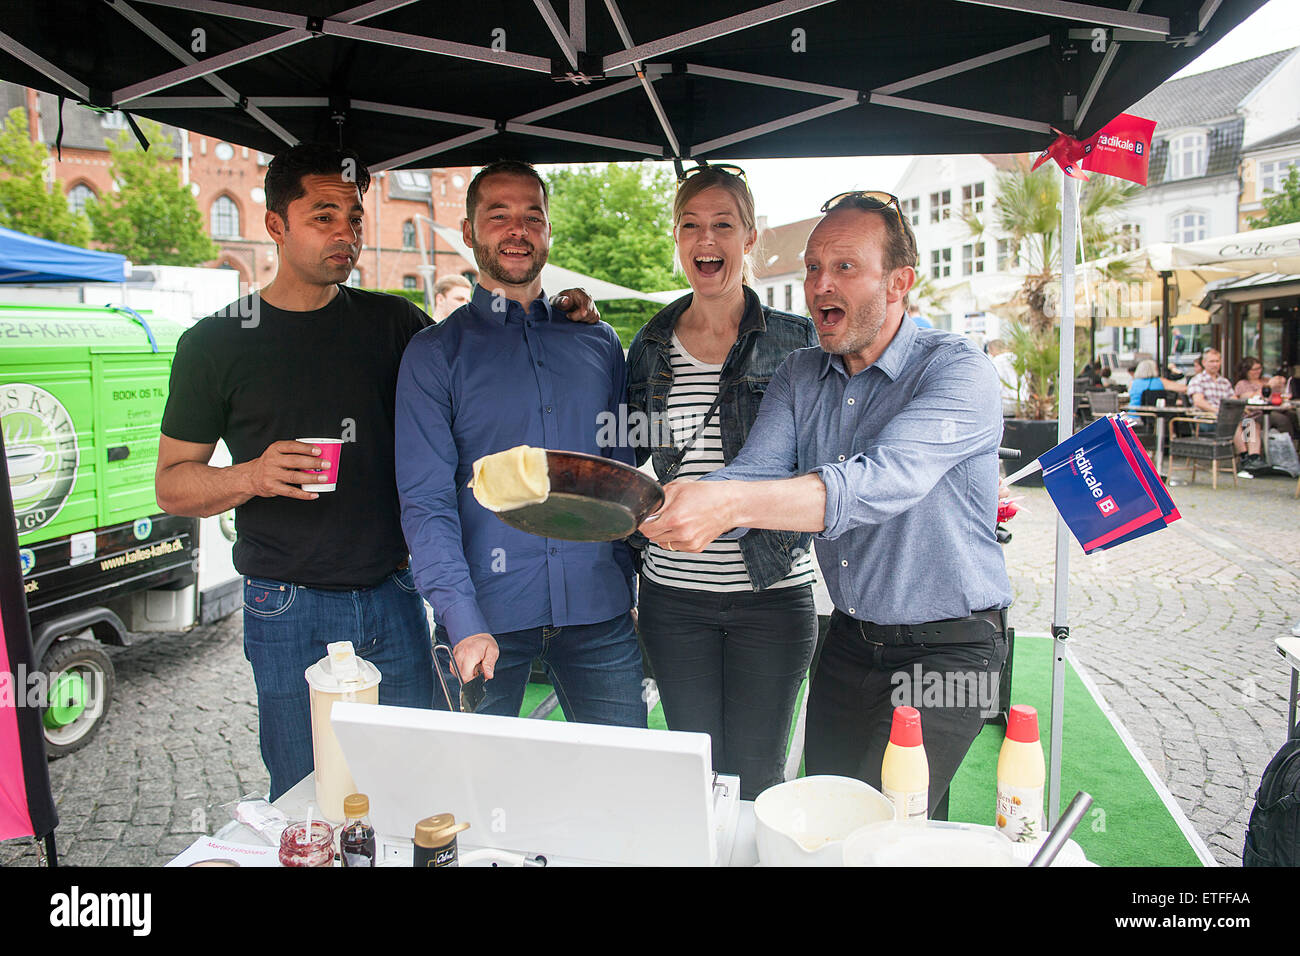 Hilleroed, Denmark, June 13th, 2015: Martin Lidegaard (Foreign Minister) (R) nearly manages to catch the pancake, - Stock Image